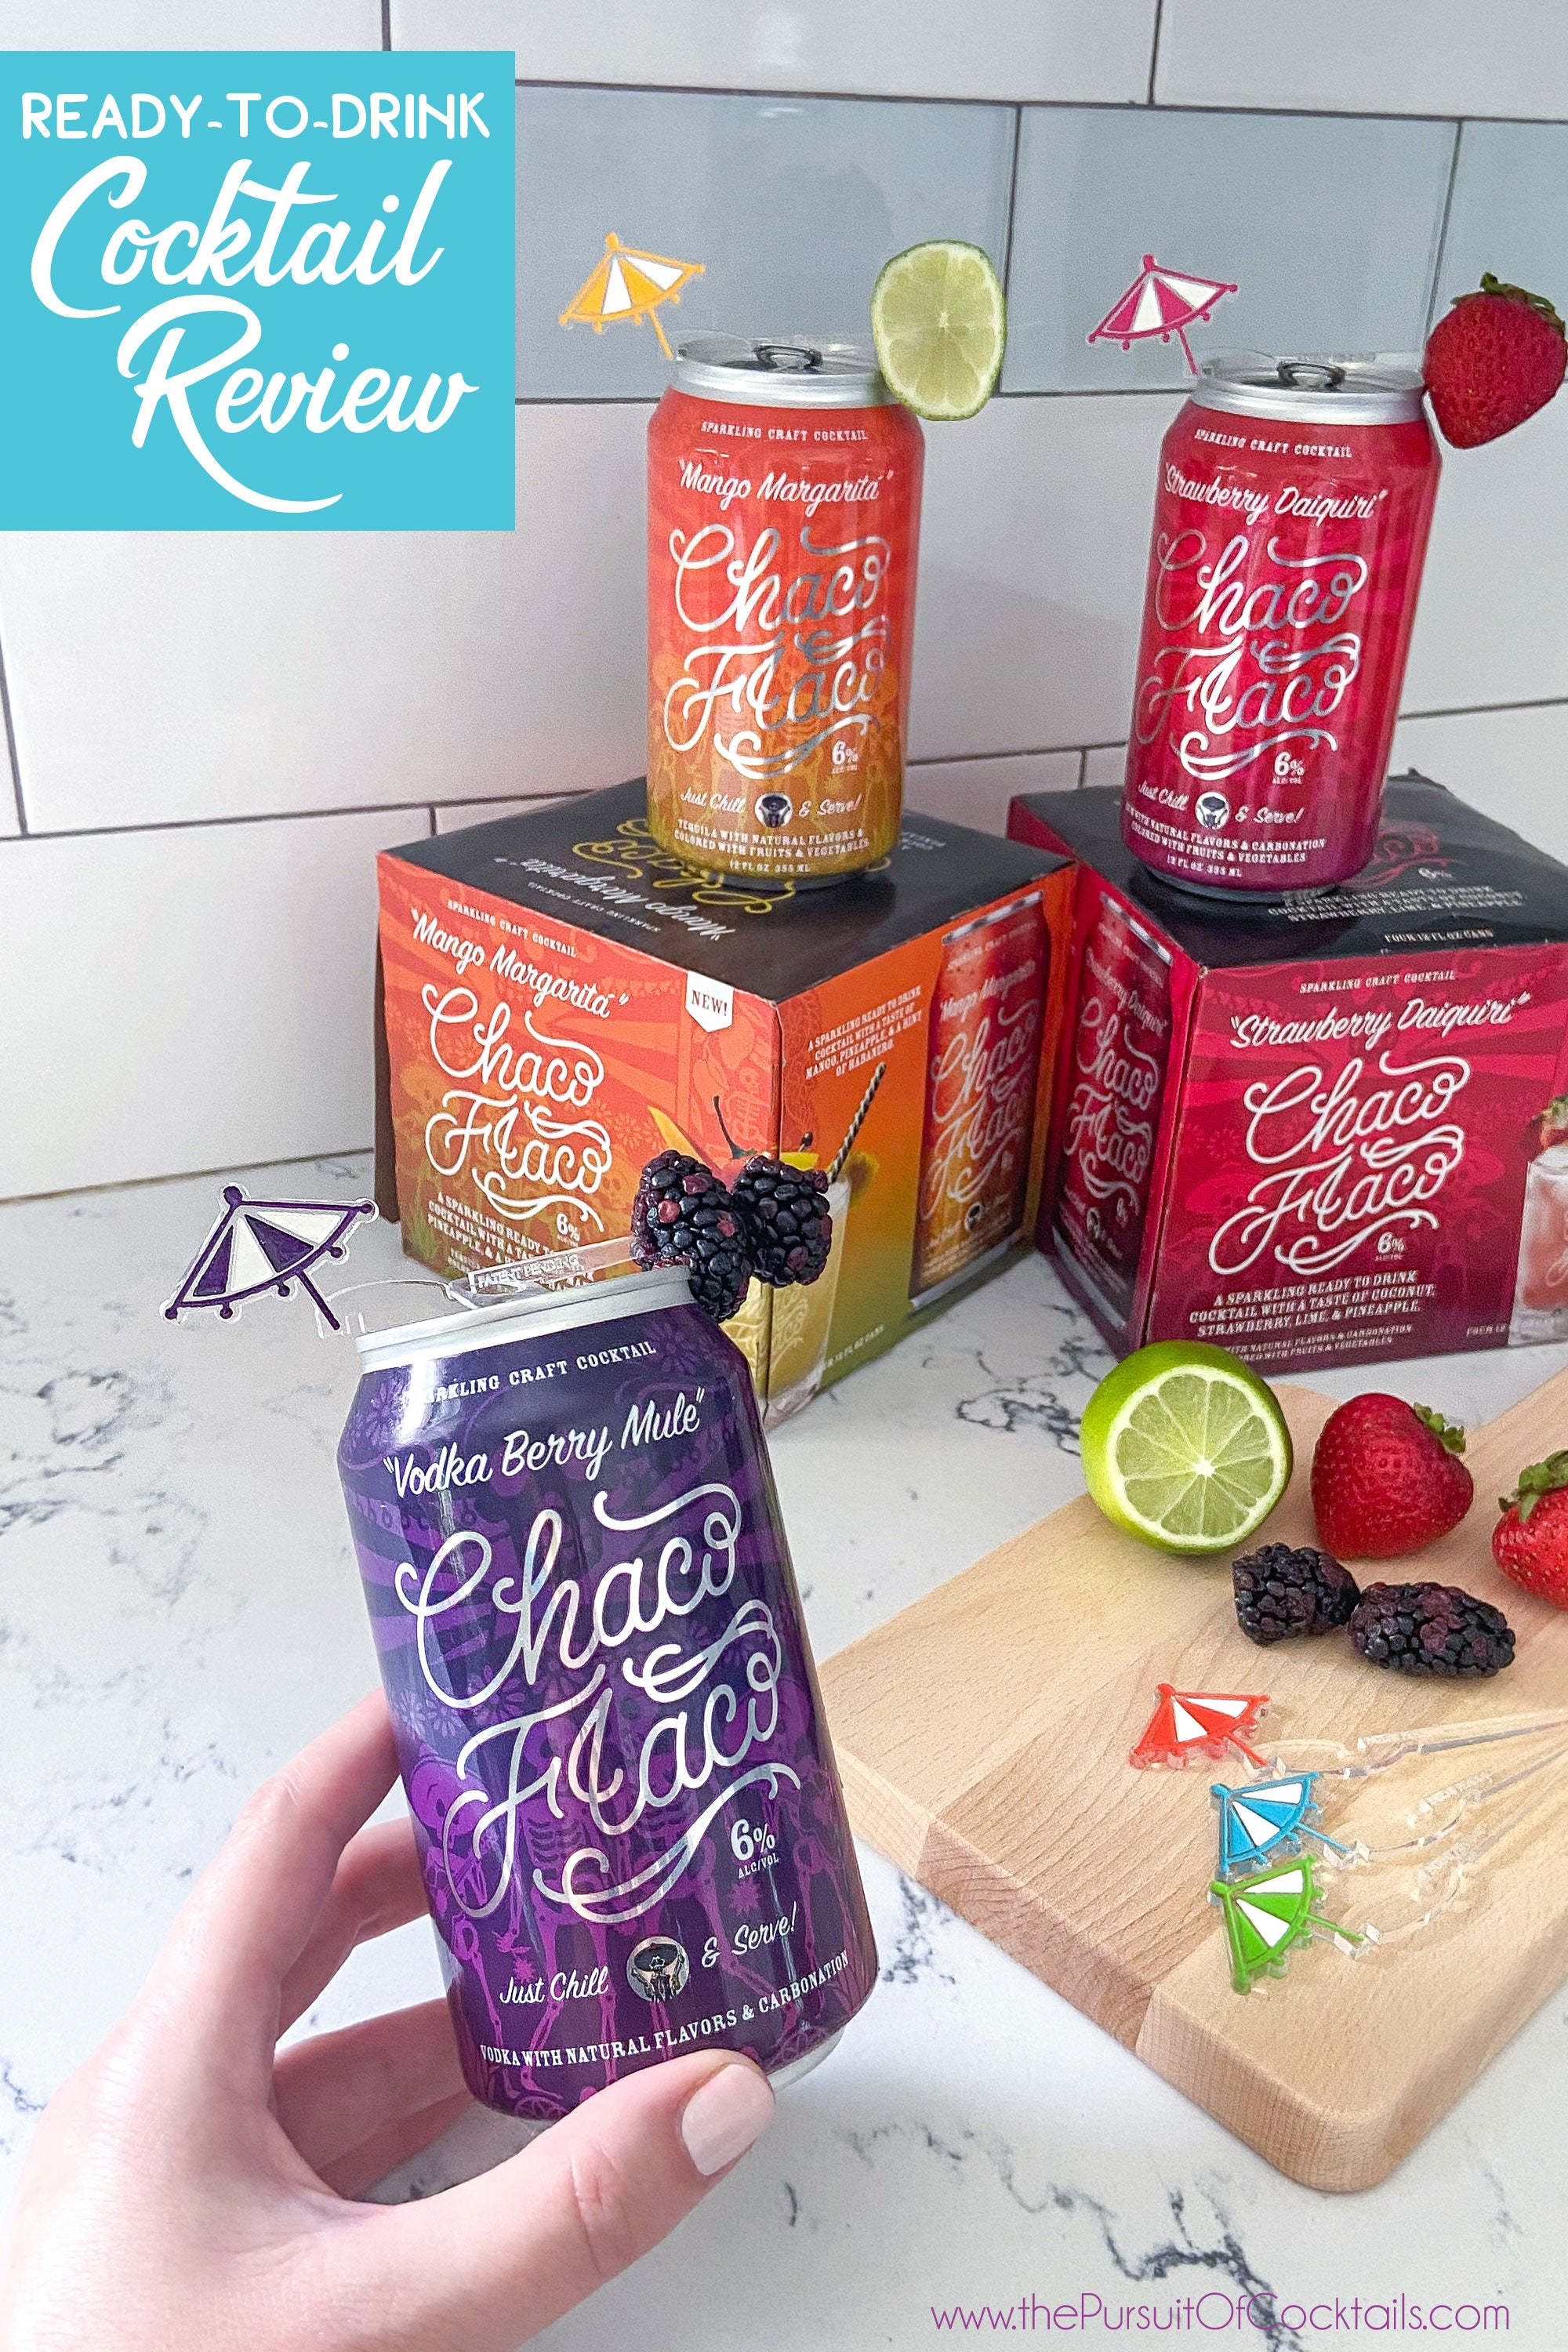 Chaco Flaco canned cocktail review by The Pursuit of Cocktails